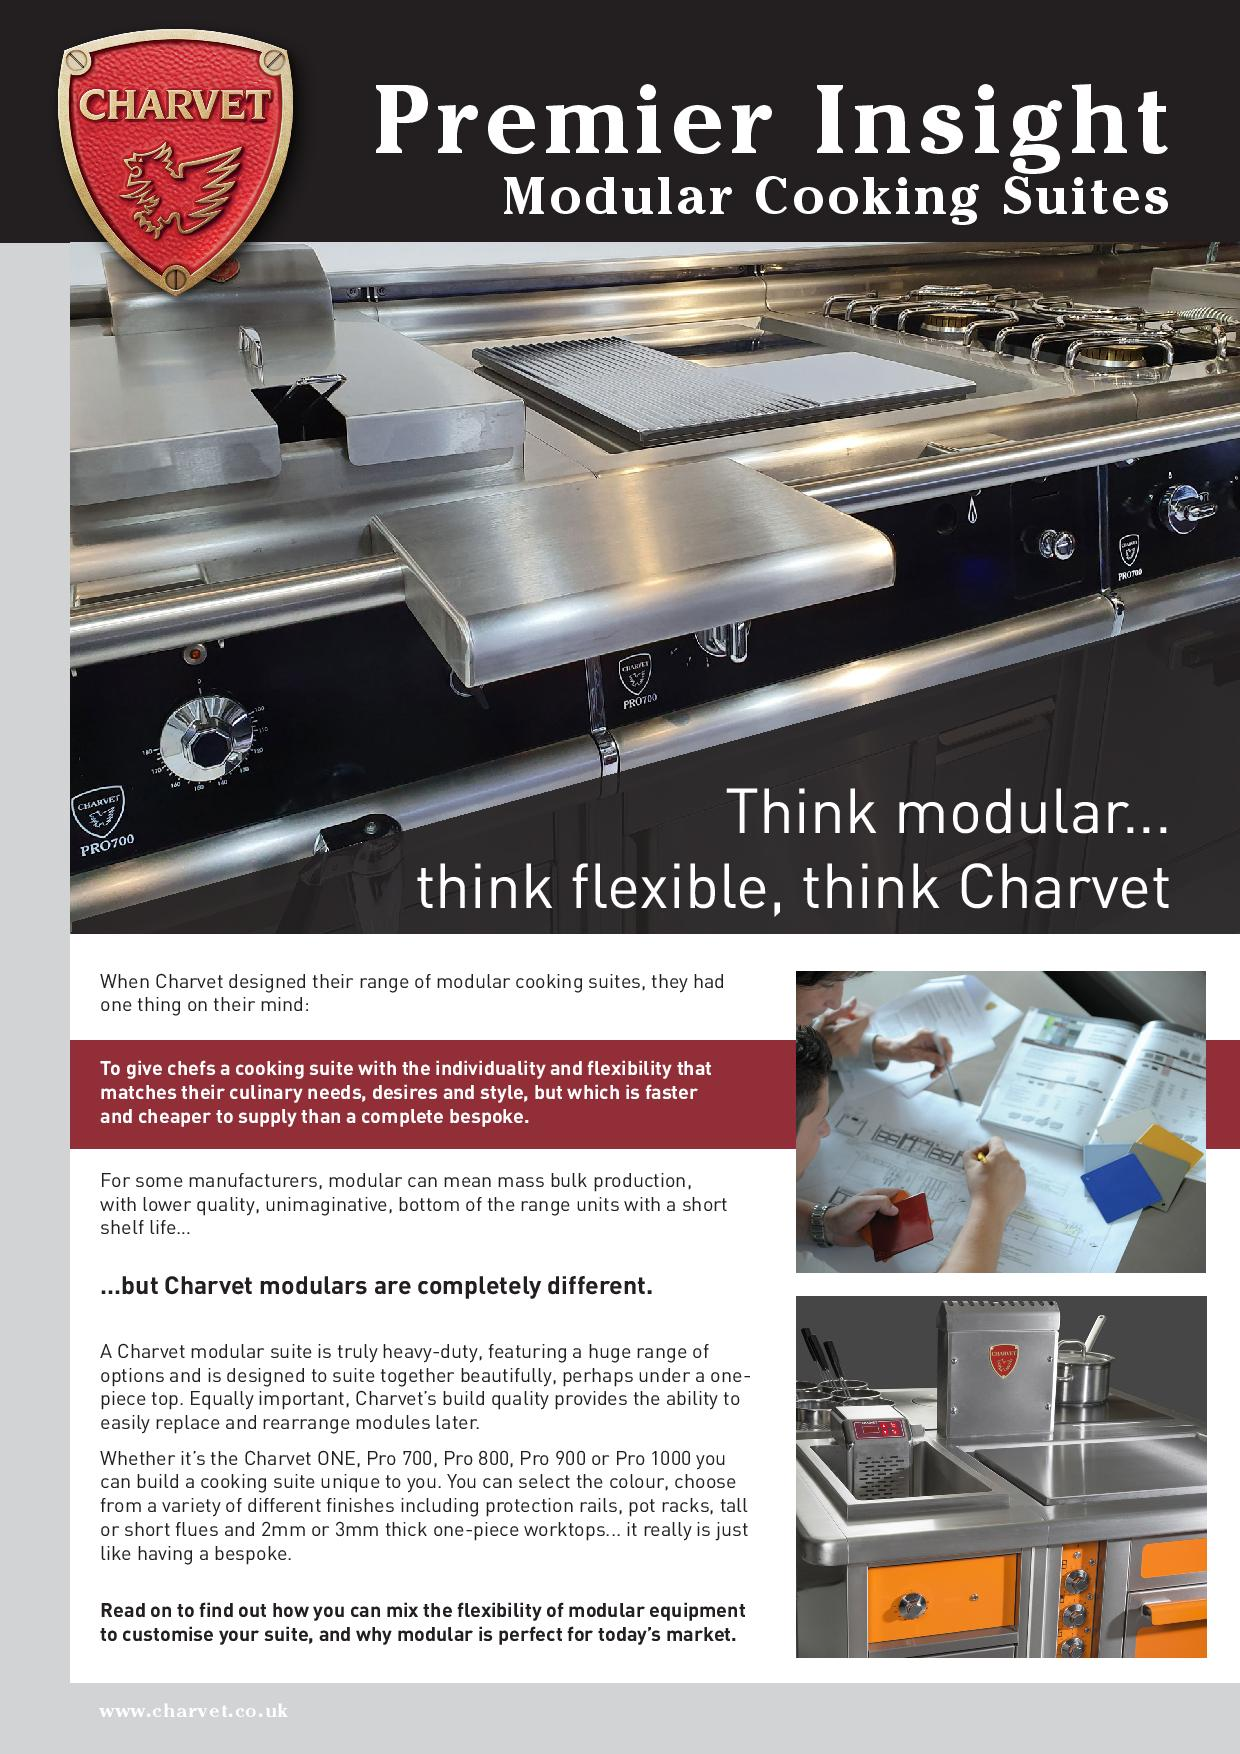 Charvet Premier Insight Newsletter cover image from December 2020